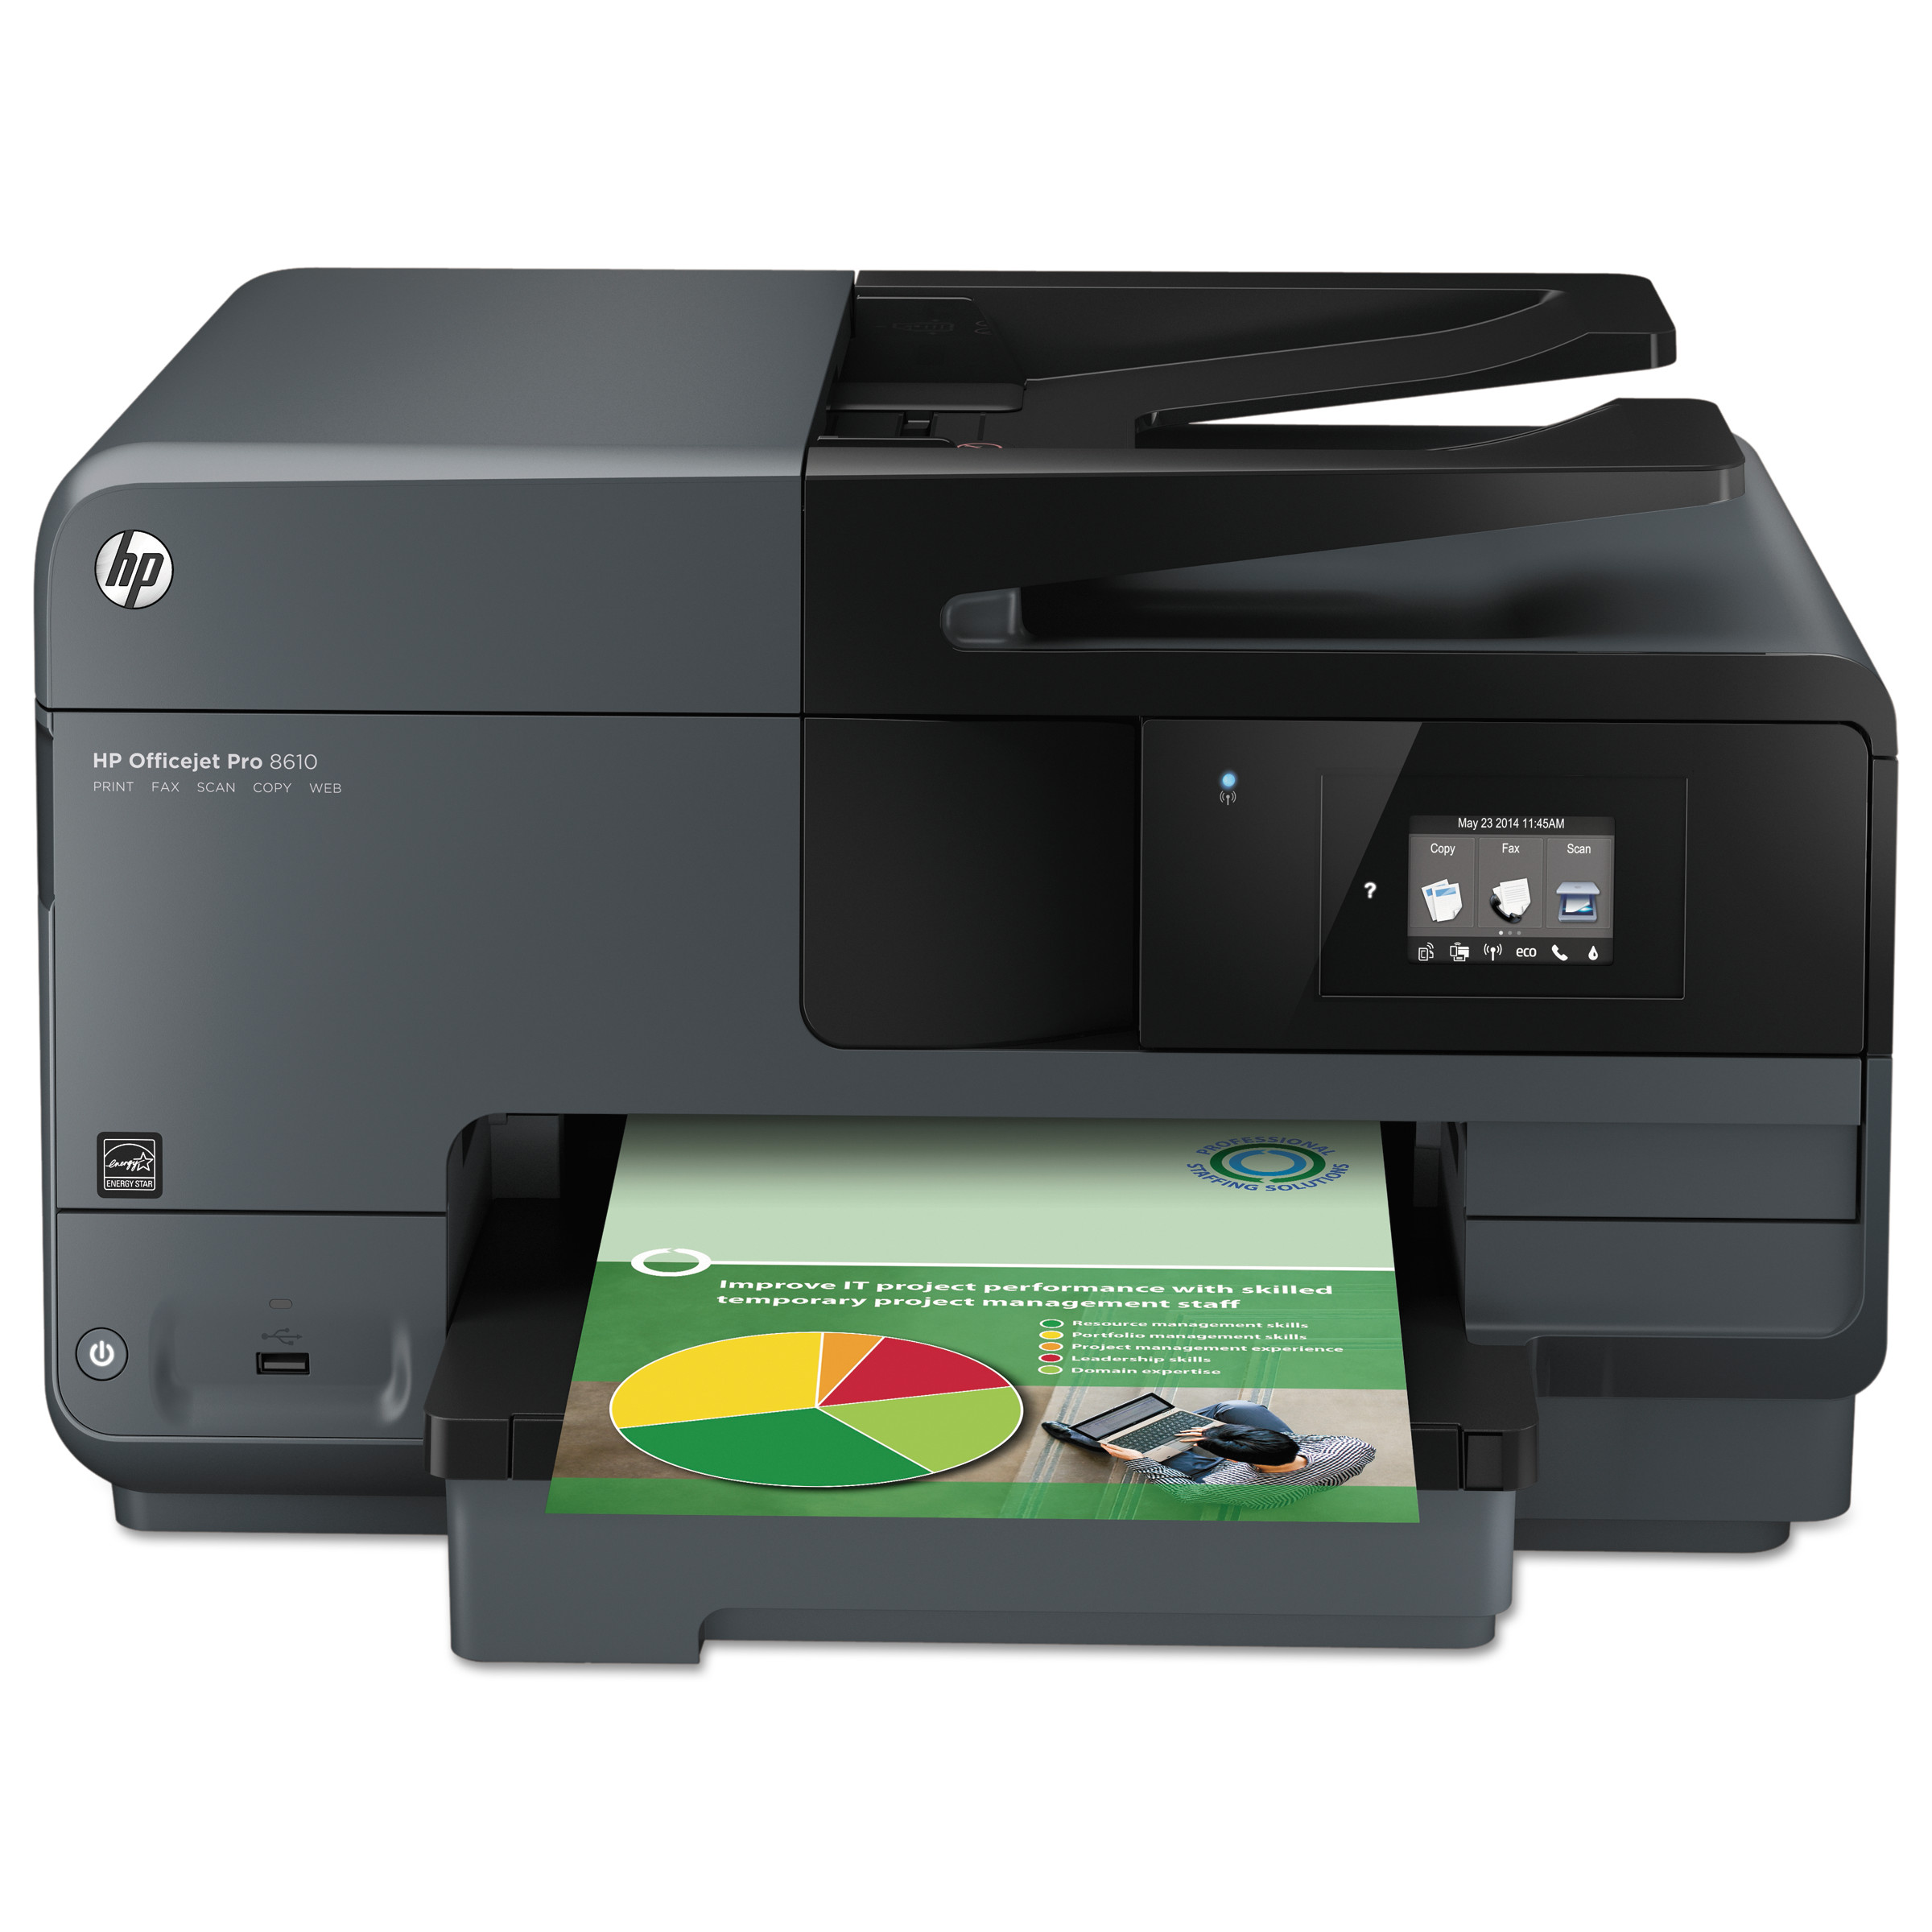 HP Officejet Pro 8610 e-All-in-One Wireless Inkjet Printer, Copy/Fax/Print/Scan